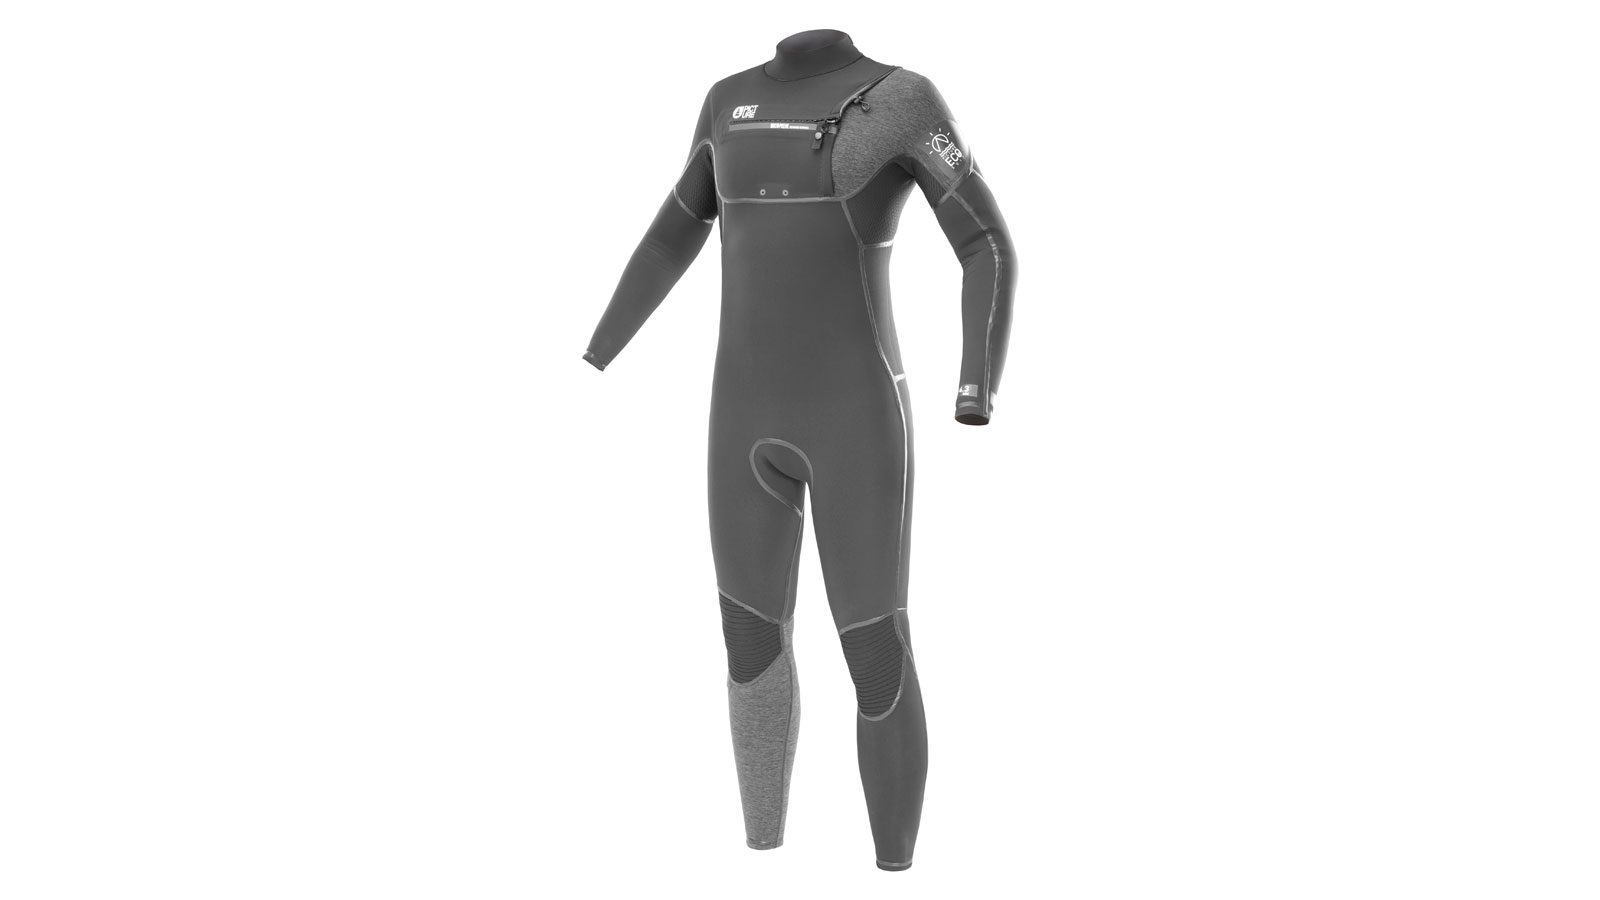 Picture FW20/21 Wetsuit Preview